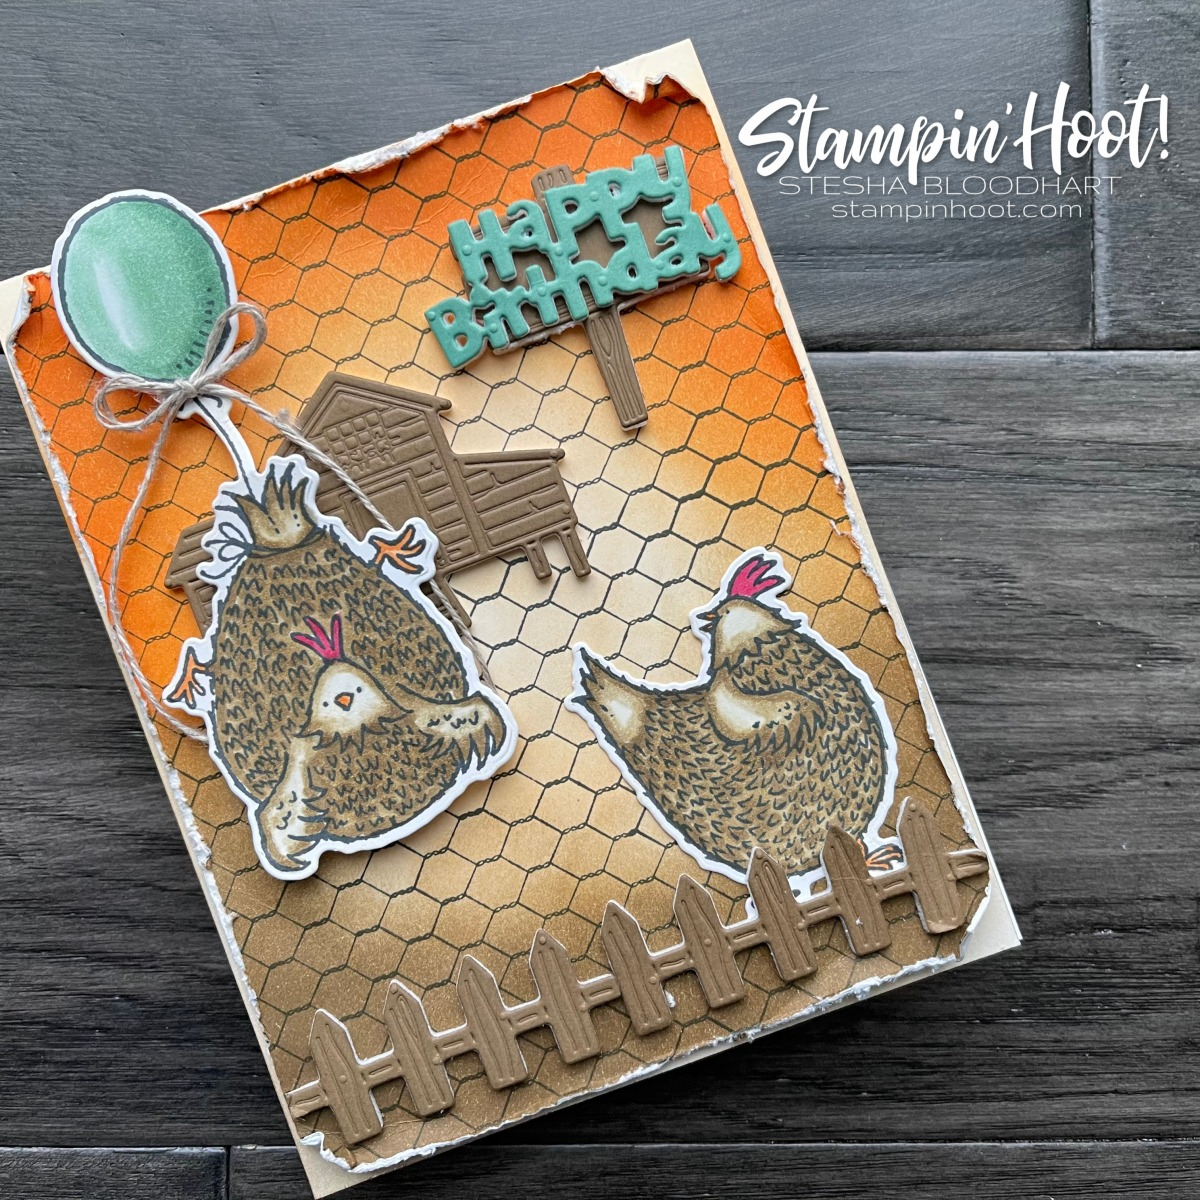 Hey Chick and Hey Birthday Chick get All Wired Up with Stampin' Up! for #tgifc299 Background Stamp Product Spotlight - Stesha Bloodhart, Stampin' Hoot!